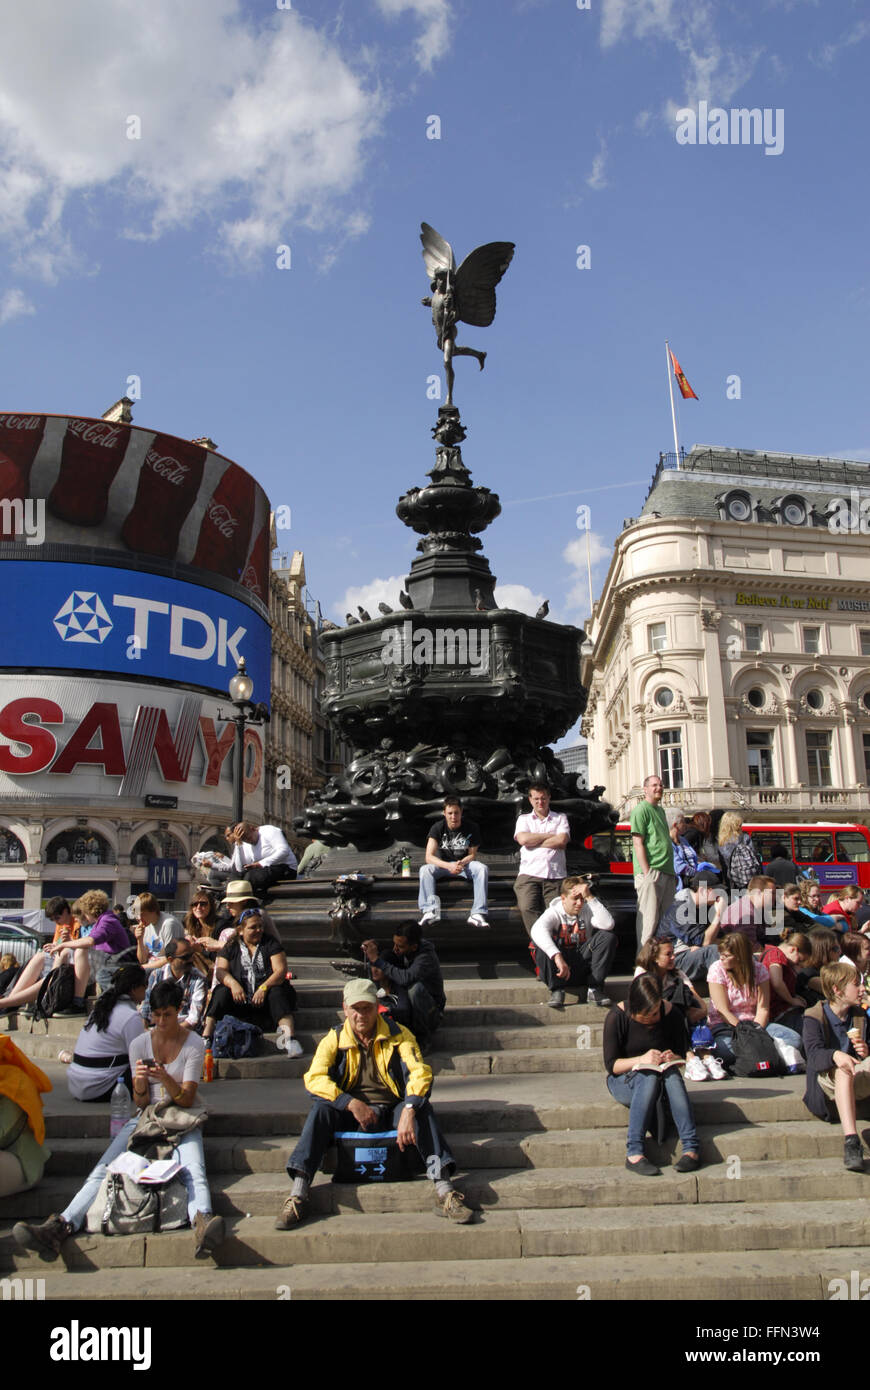 Eros at Picadilly Circus, London, with tourists sitting on the steps. - Stock Image